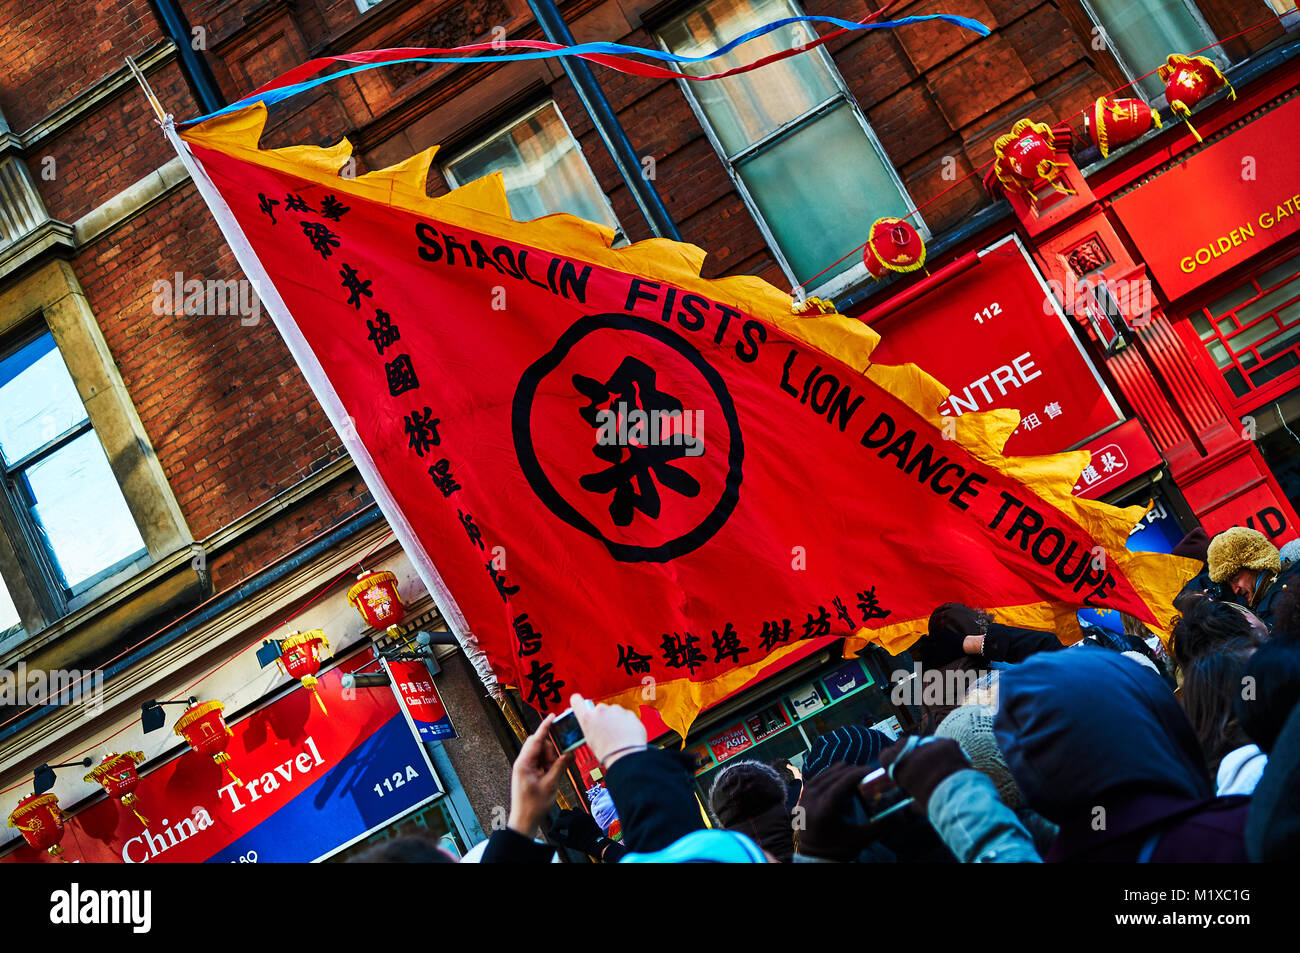 chinatown london chinese new year parade red lantern stock image